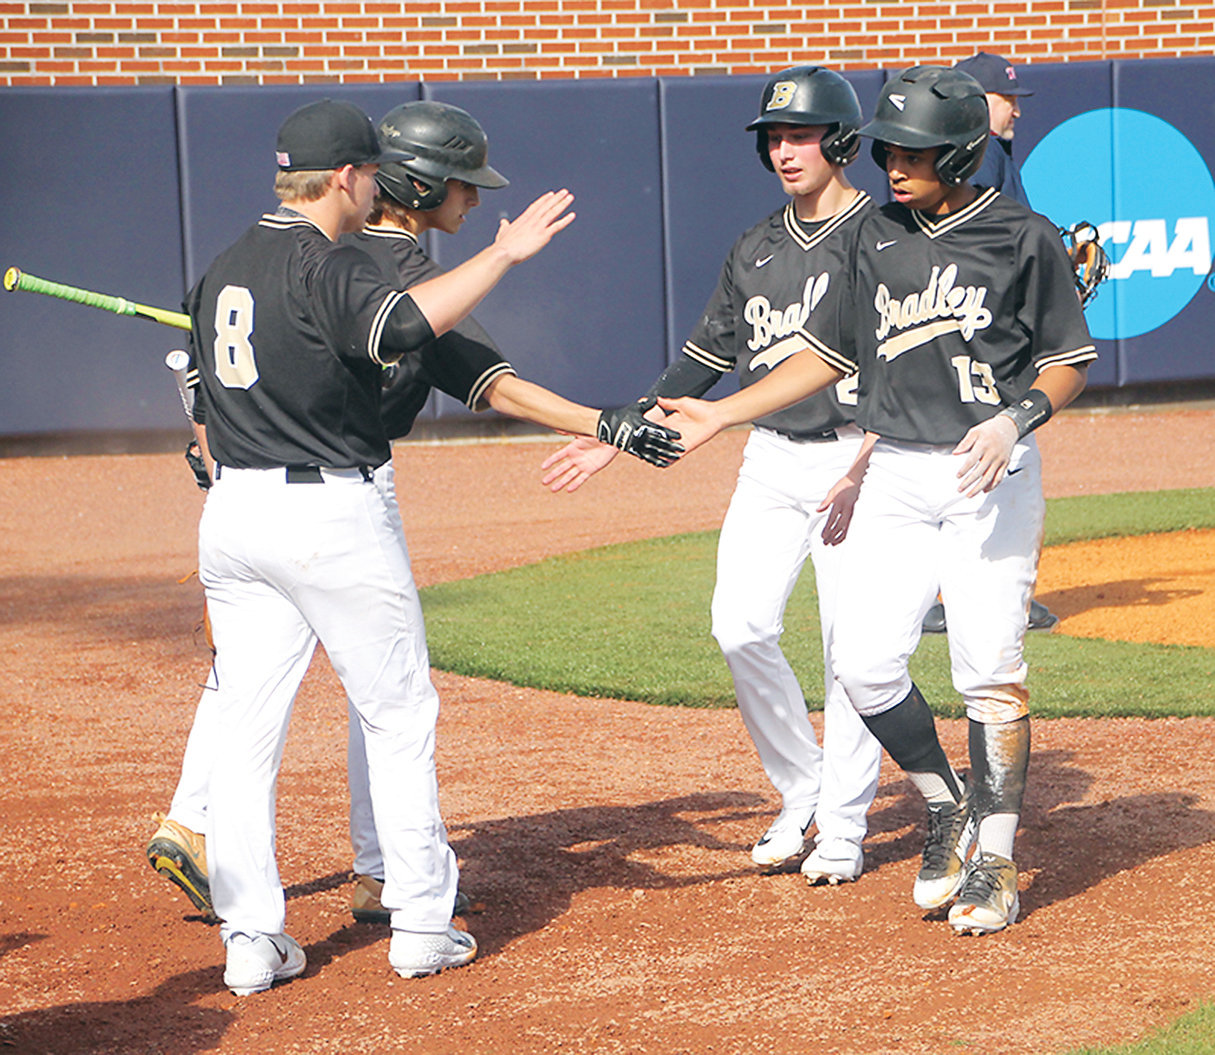 BRADLEY CENTRAL baserunners Iverson Vasquez (13) and Caden Sherlin (2) are greeted by teammates Dylan Standifer (8) and Ryan Giovengo after scoring runs in the opening game Tuesday at Olympic Field, on the Lee University campus.